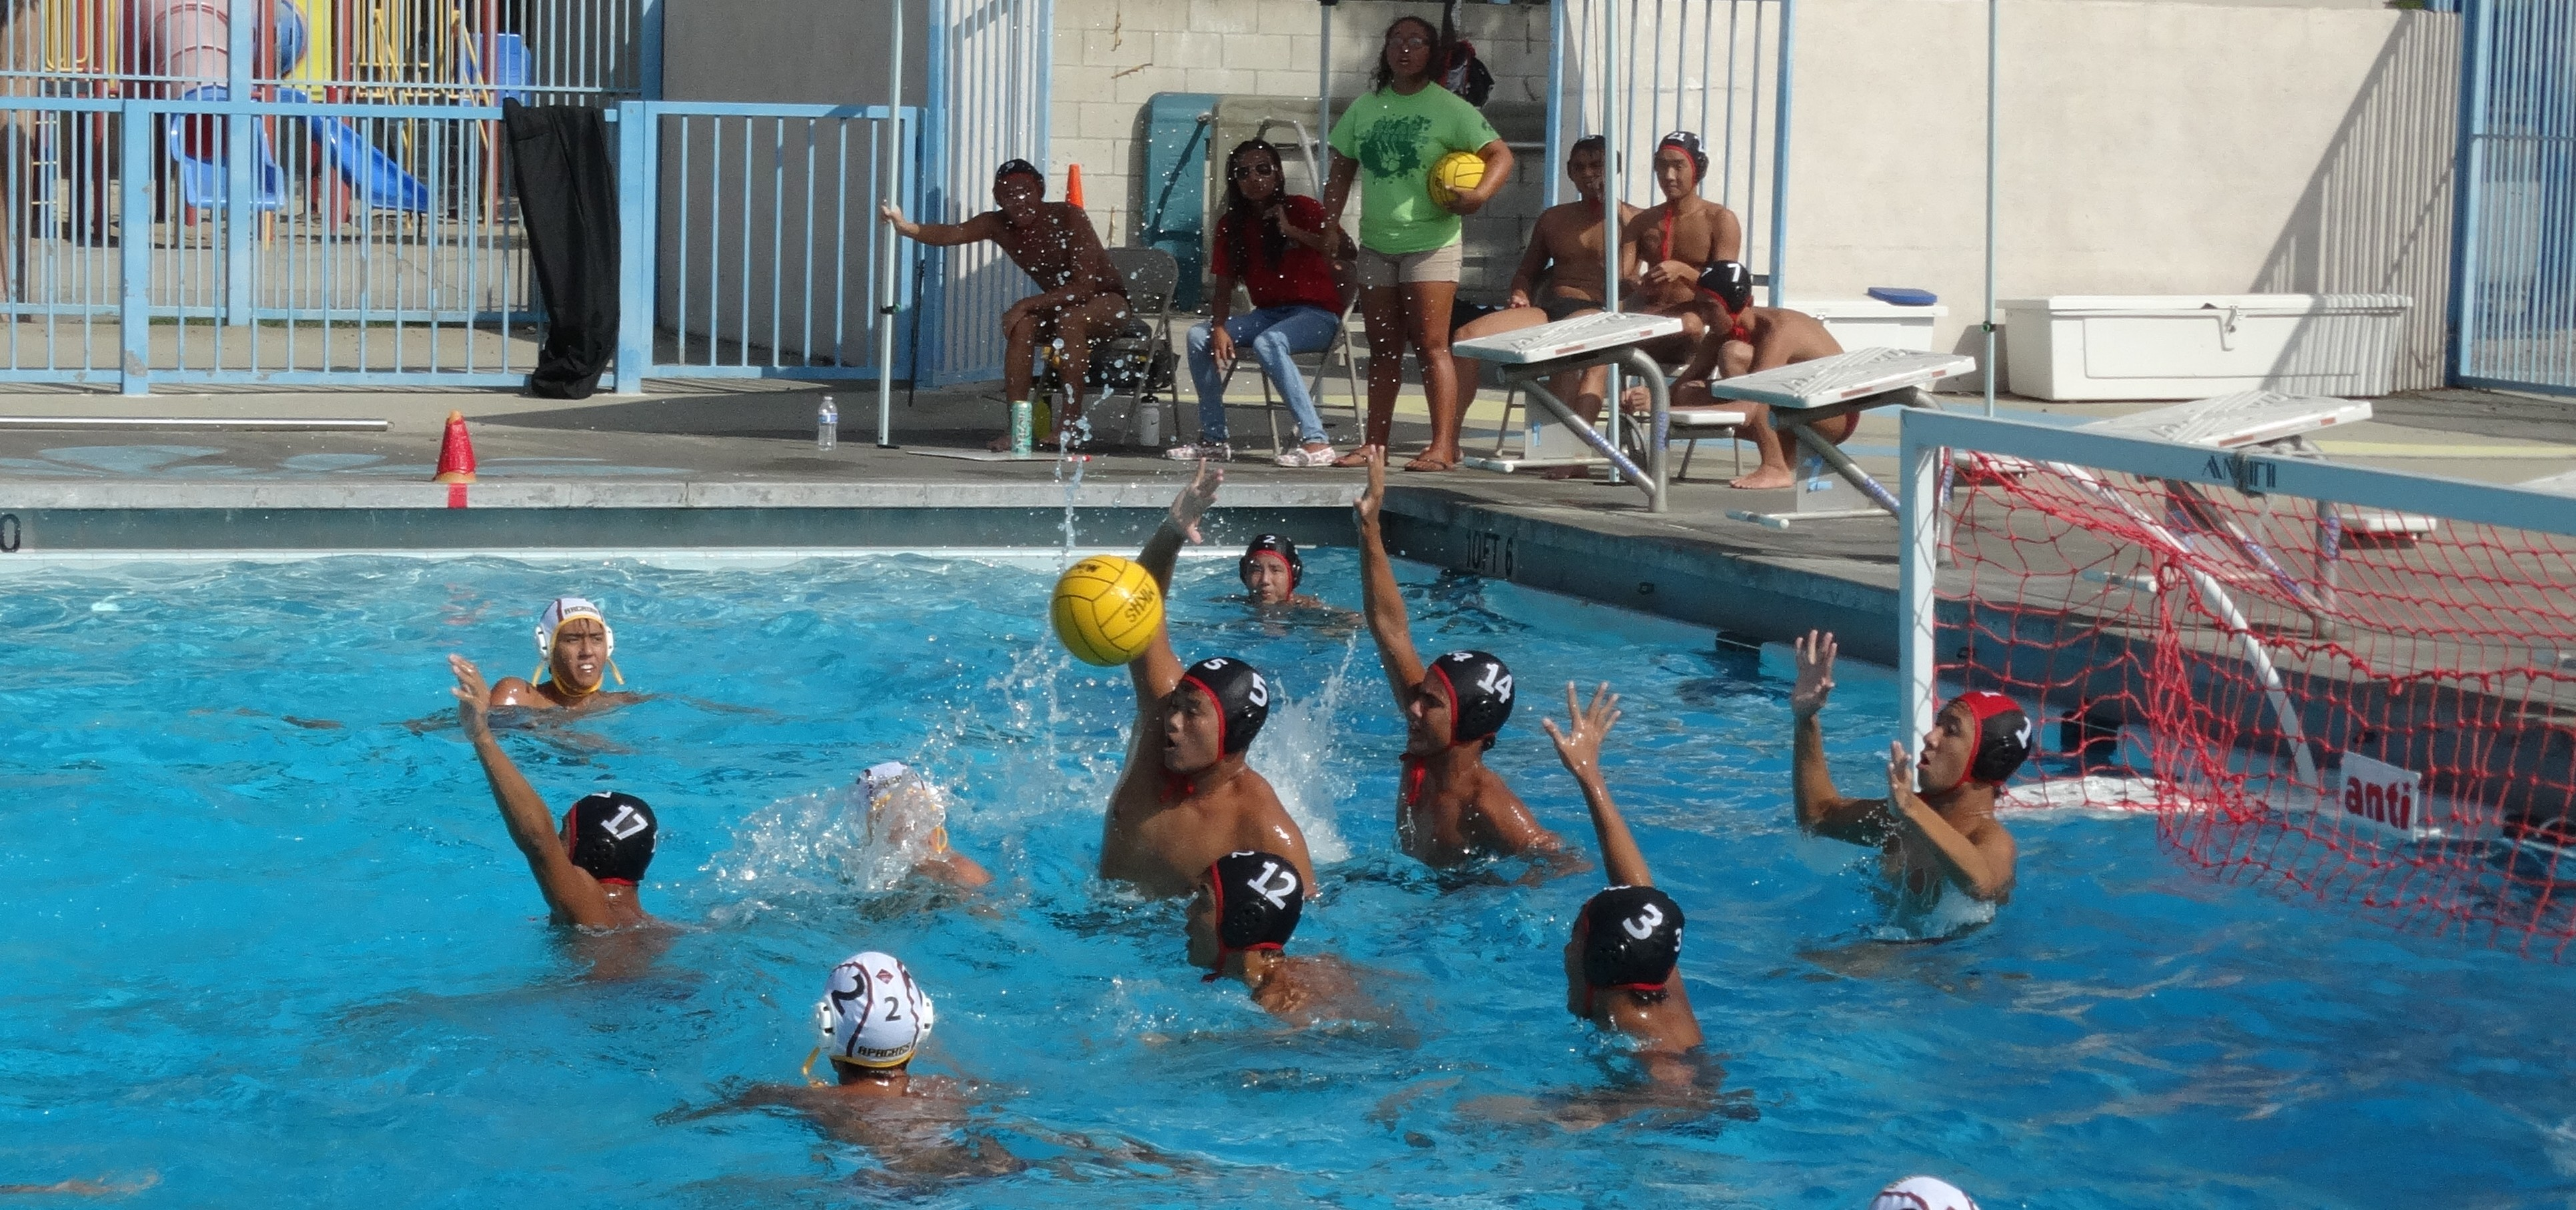 The Aztecs work together to block a shot. Pictured (from left to right): Senior Kyndall Ting (17), Senior Mark Wang (5), Junior Justin Young (12), Junior Emanuel Acosta (14), Senior Matthew Chan (3), and Senior Stanley Yu (1). THE AZTEC/DARWIN TSE